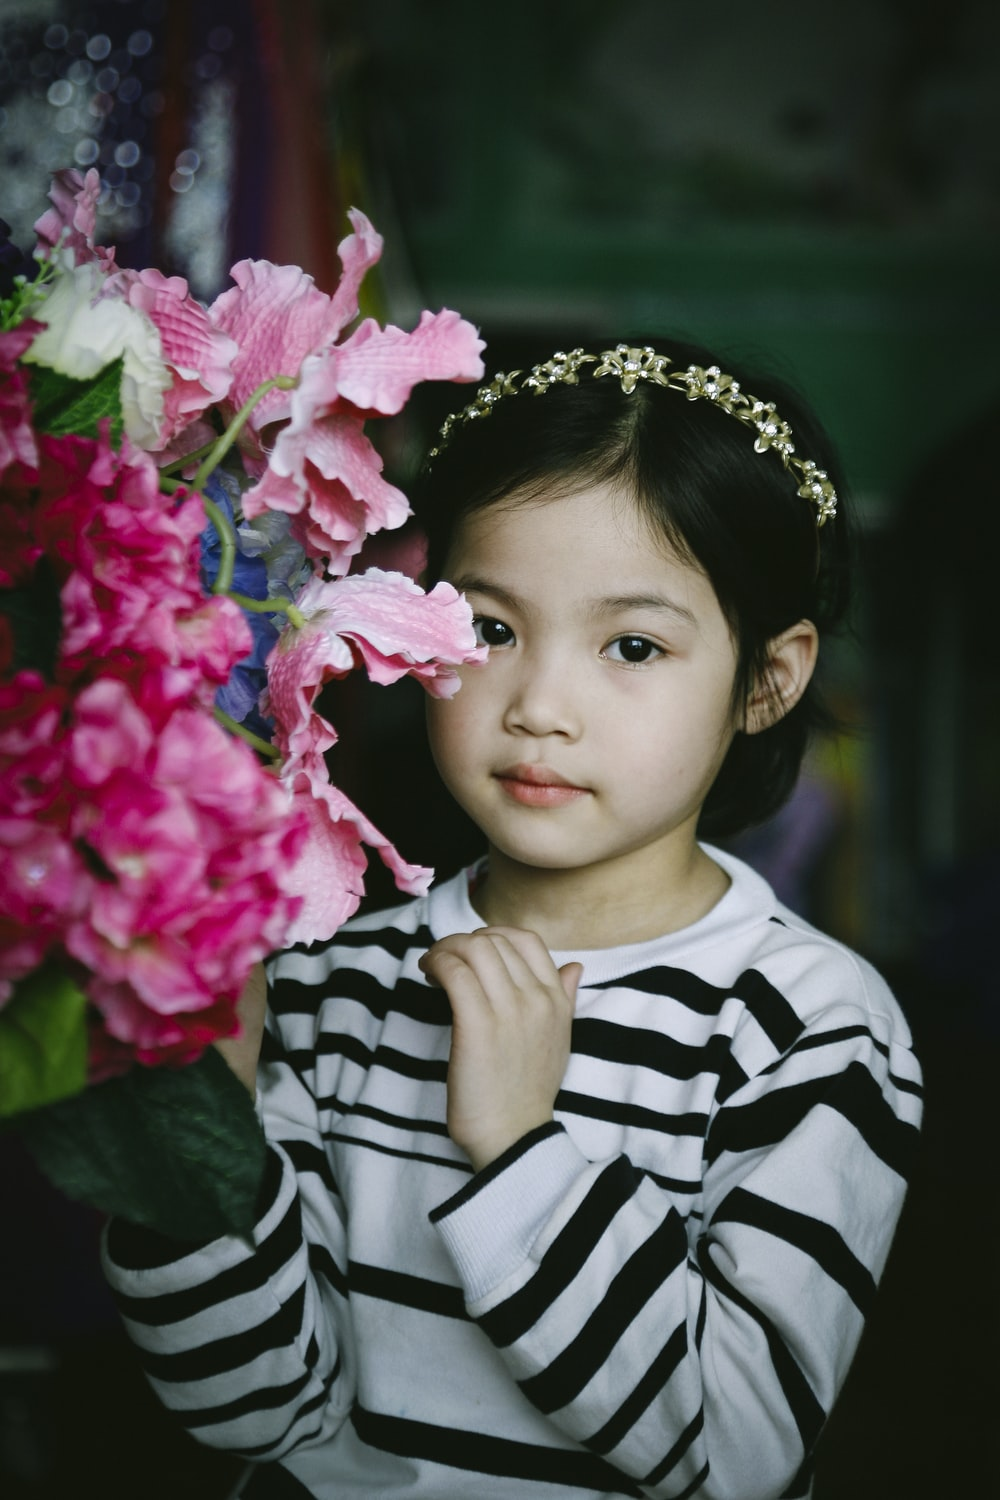 27 little girl pictures download free images on unsplash